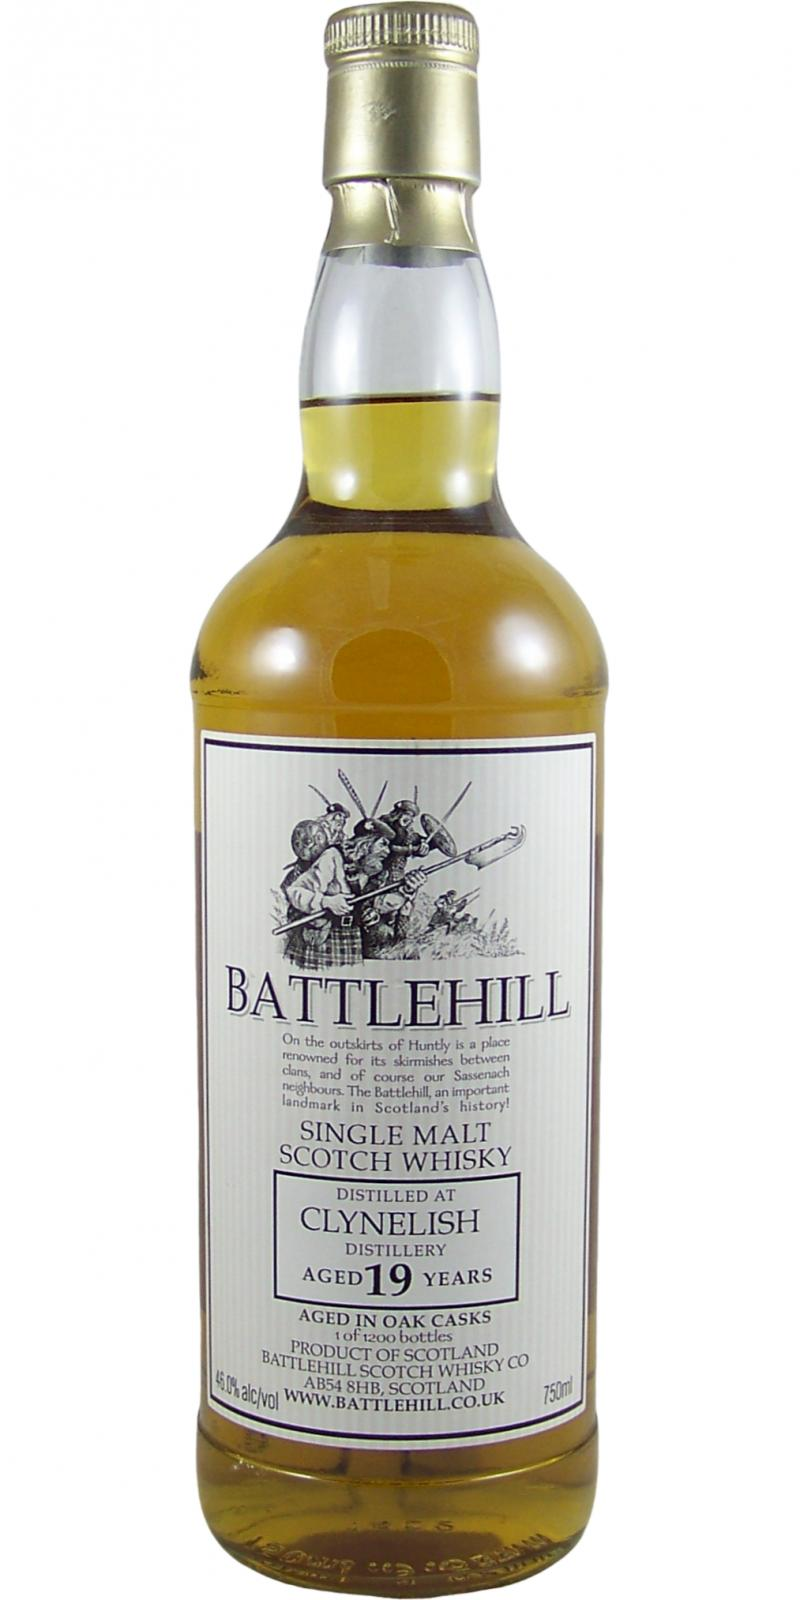 Clynelish 19-year-old BSW